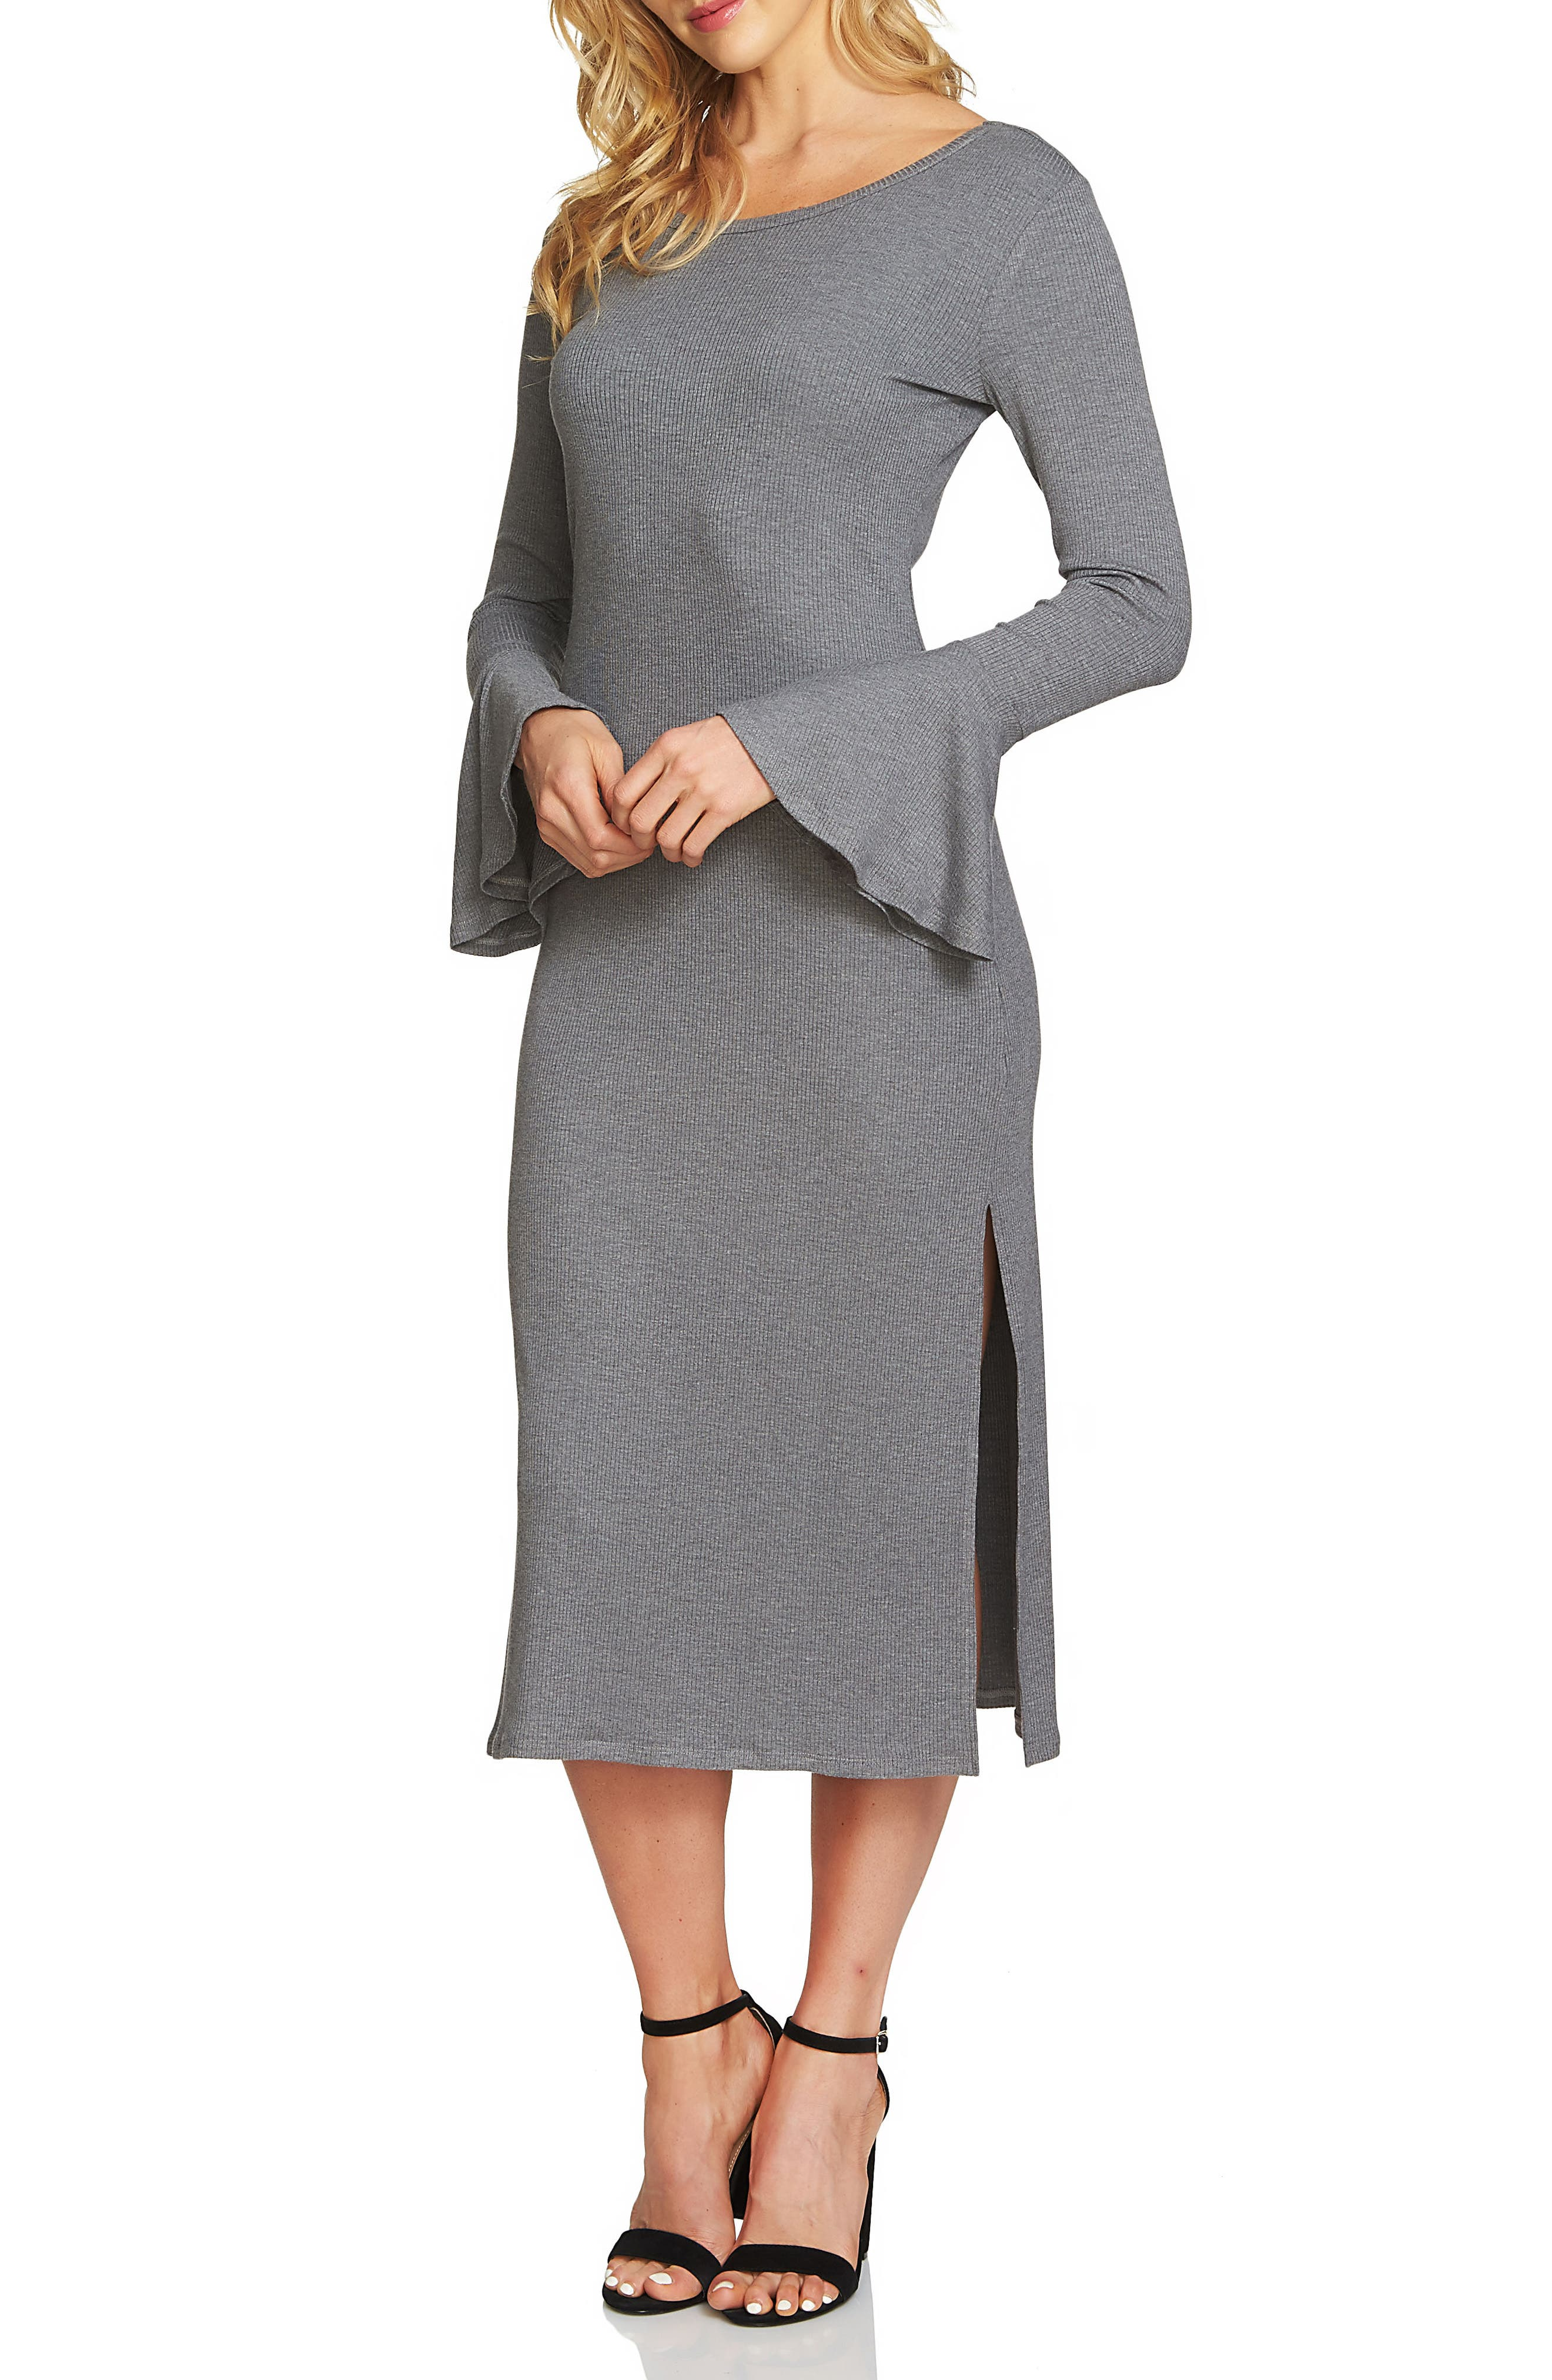 Bell Sleeve Midi Dress,                         Main,                         color, Pewter Heather